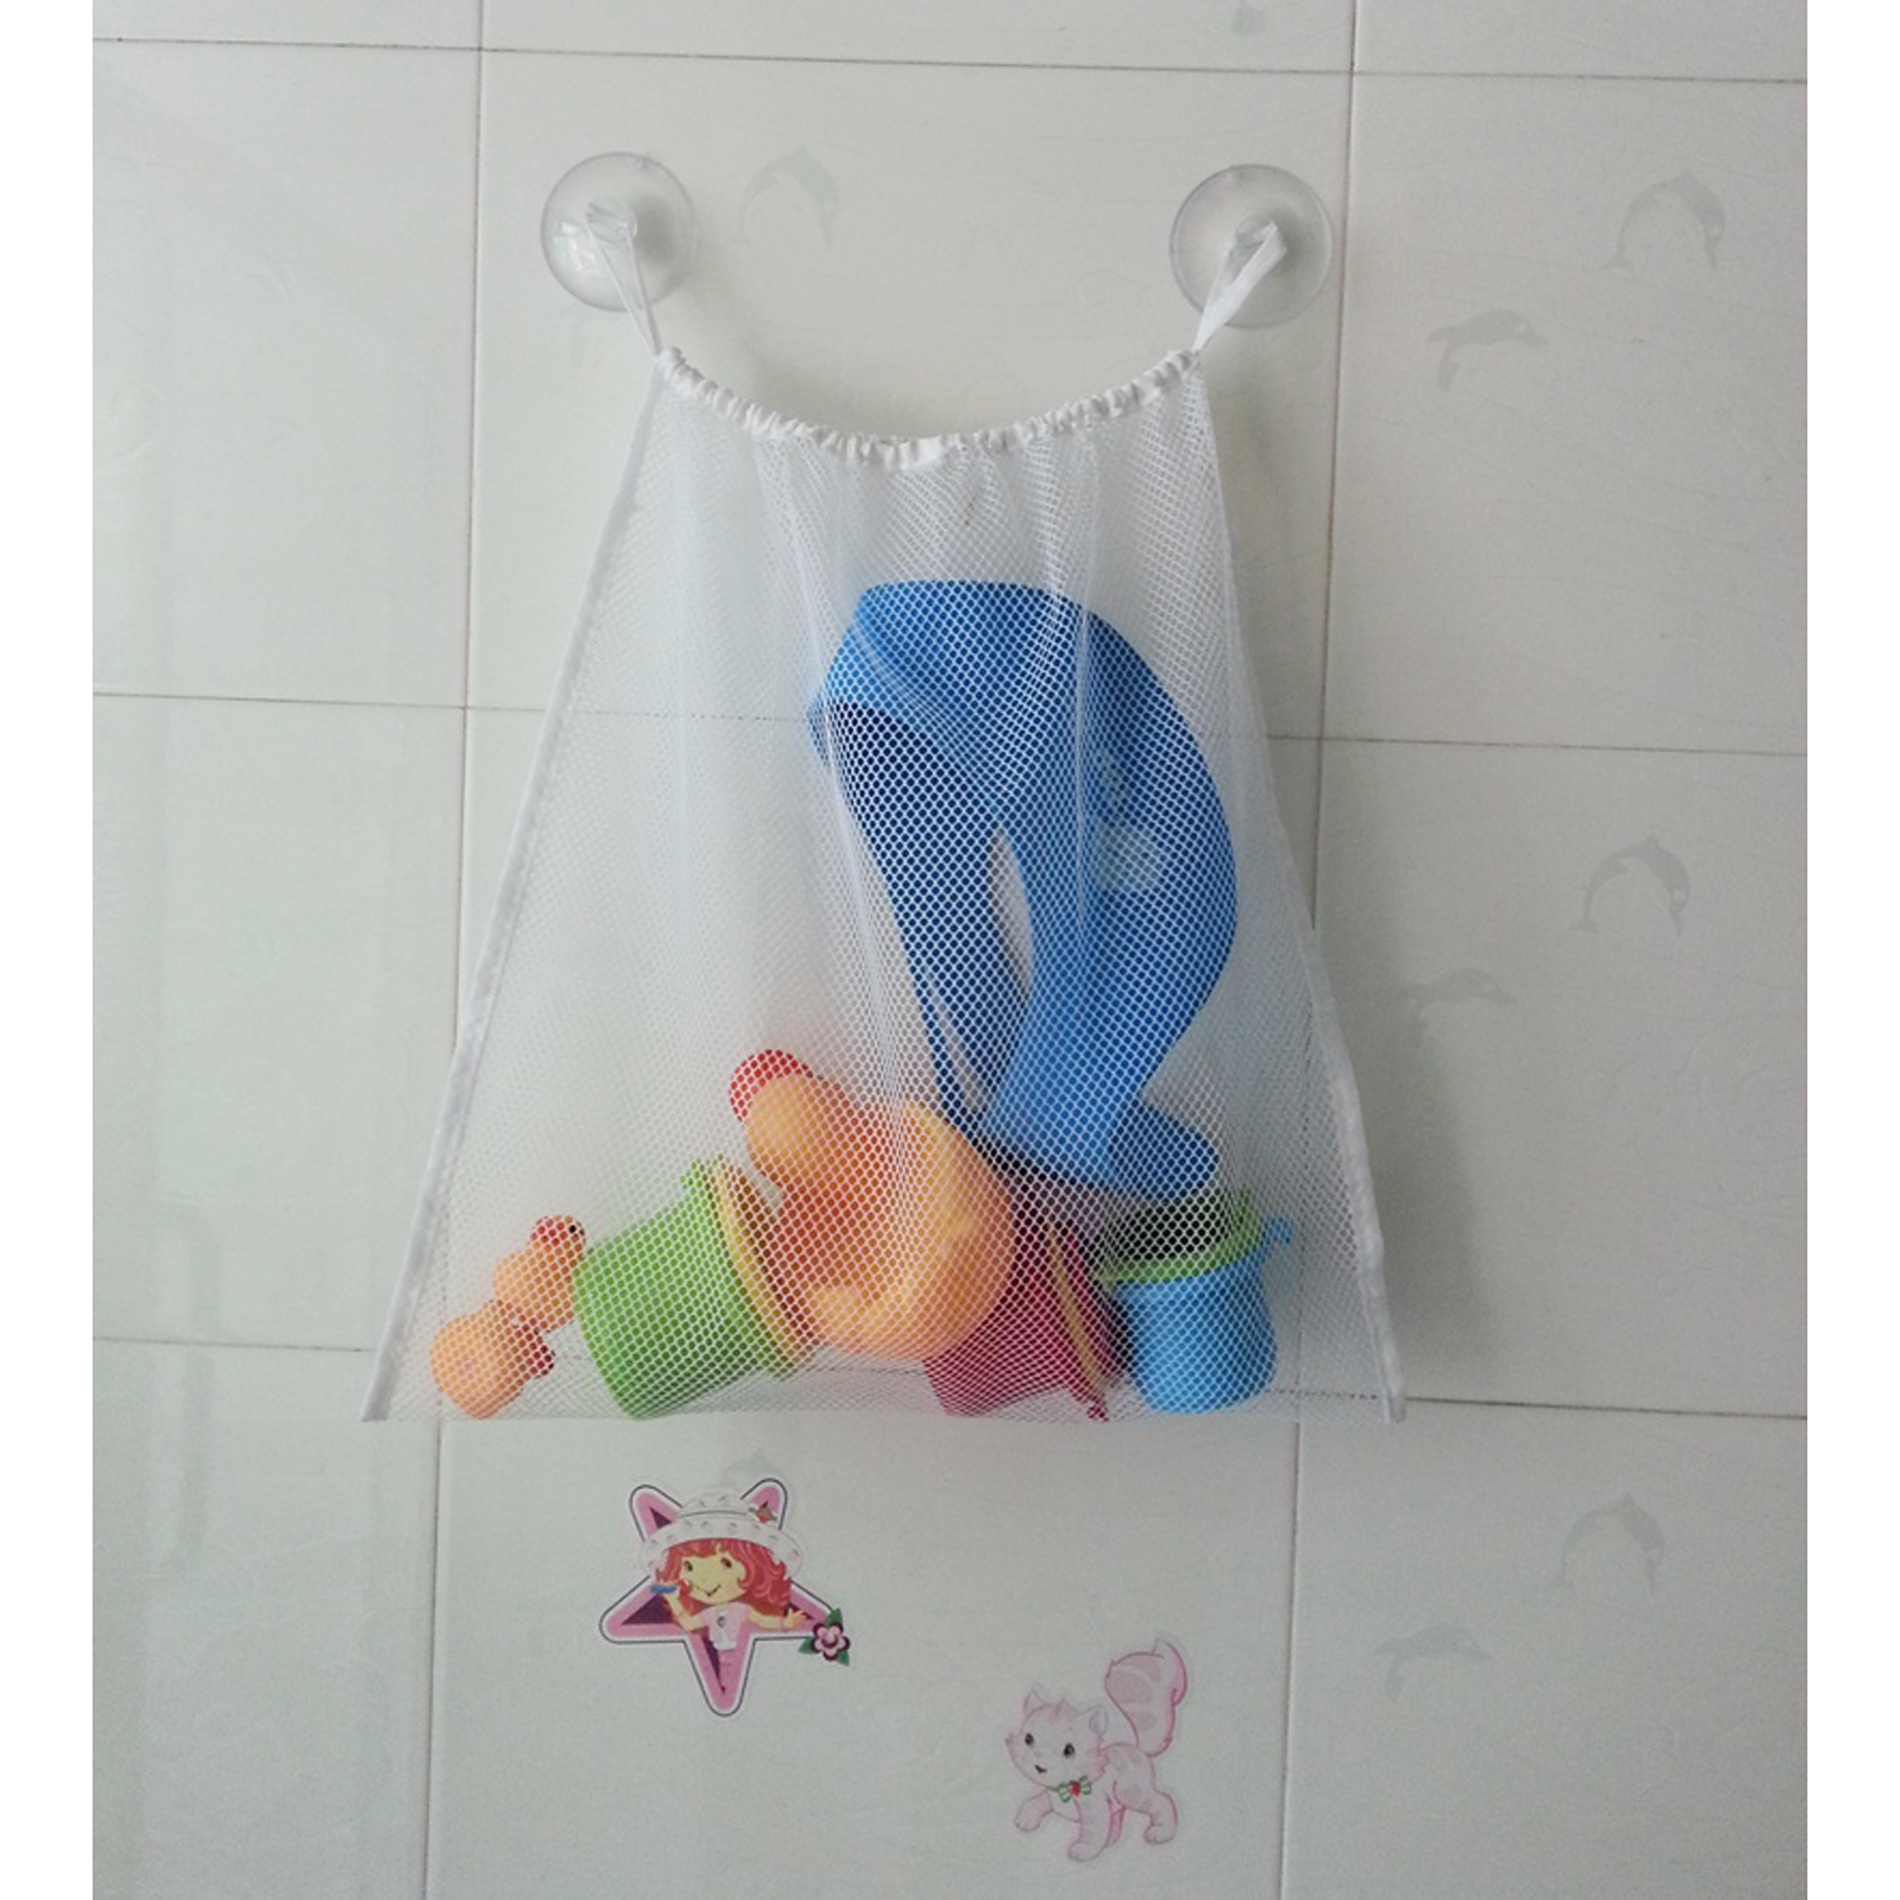 "Kids Baby Toddler Bath Toys Organizer Holder Hanging Storage Mesh Bag 18""x14""... by Unbranded"